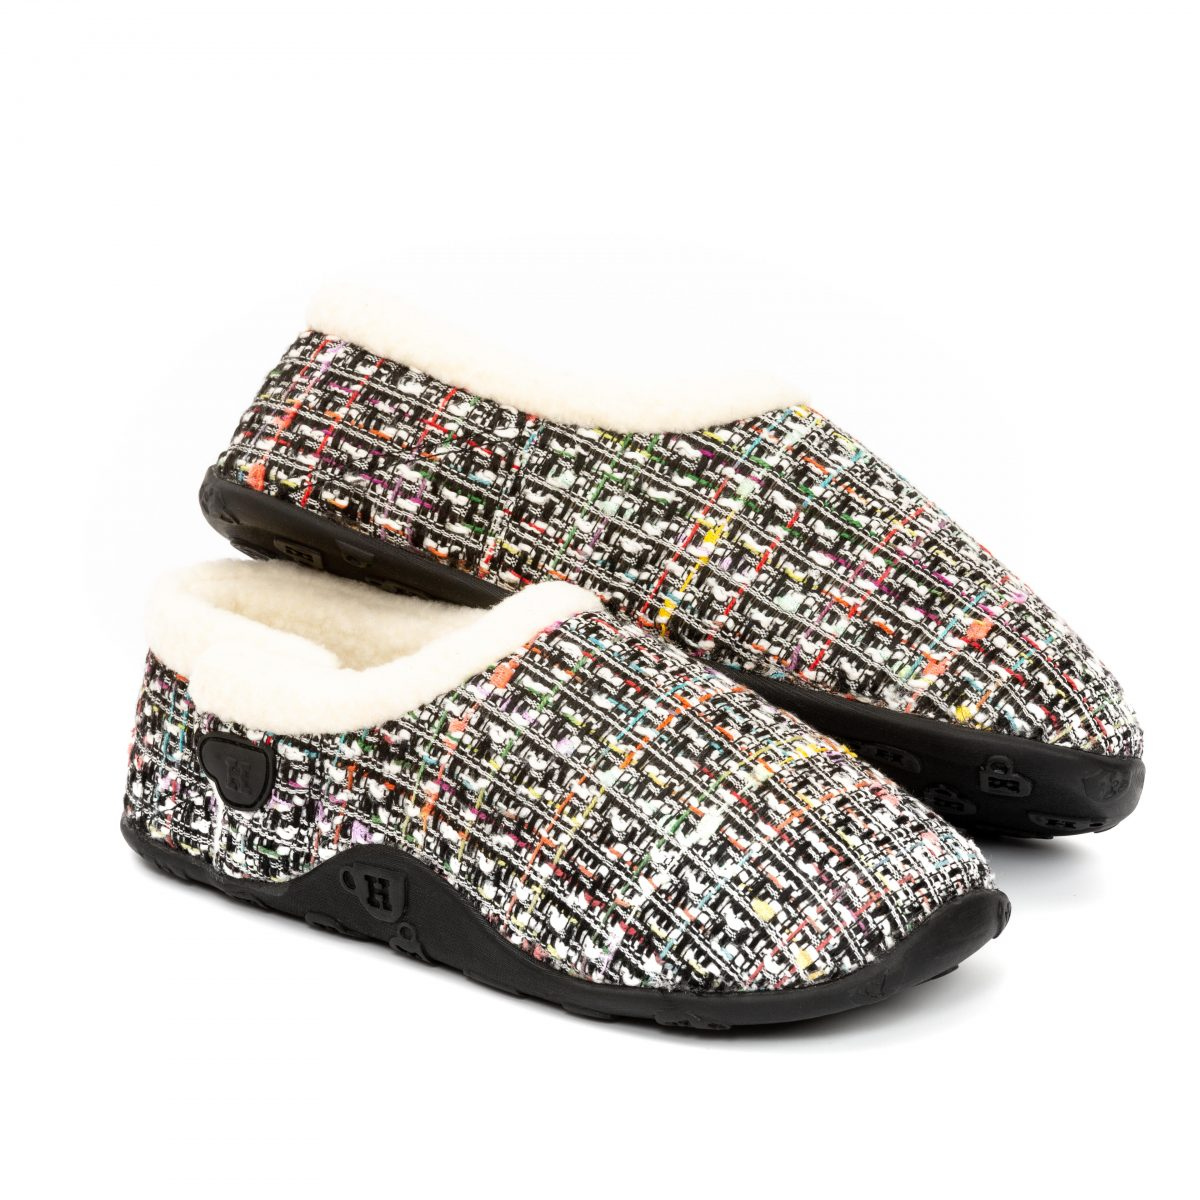 Coco Wht pnk blk tweed W 2 mr